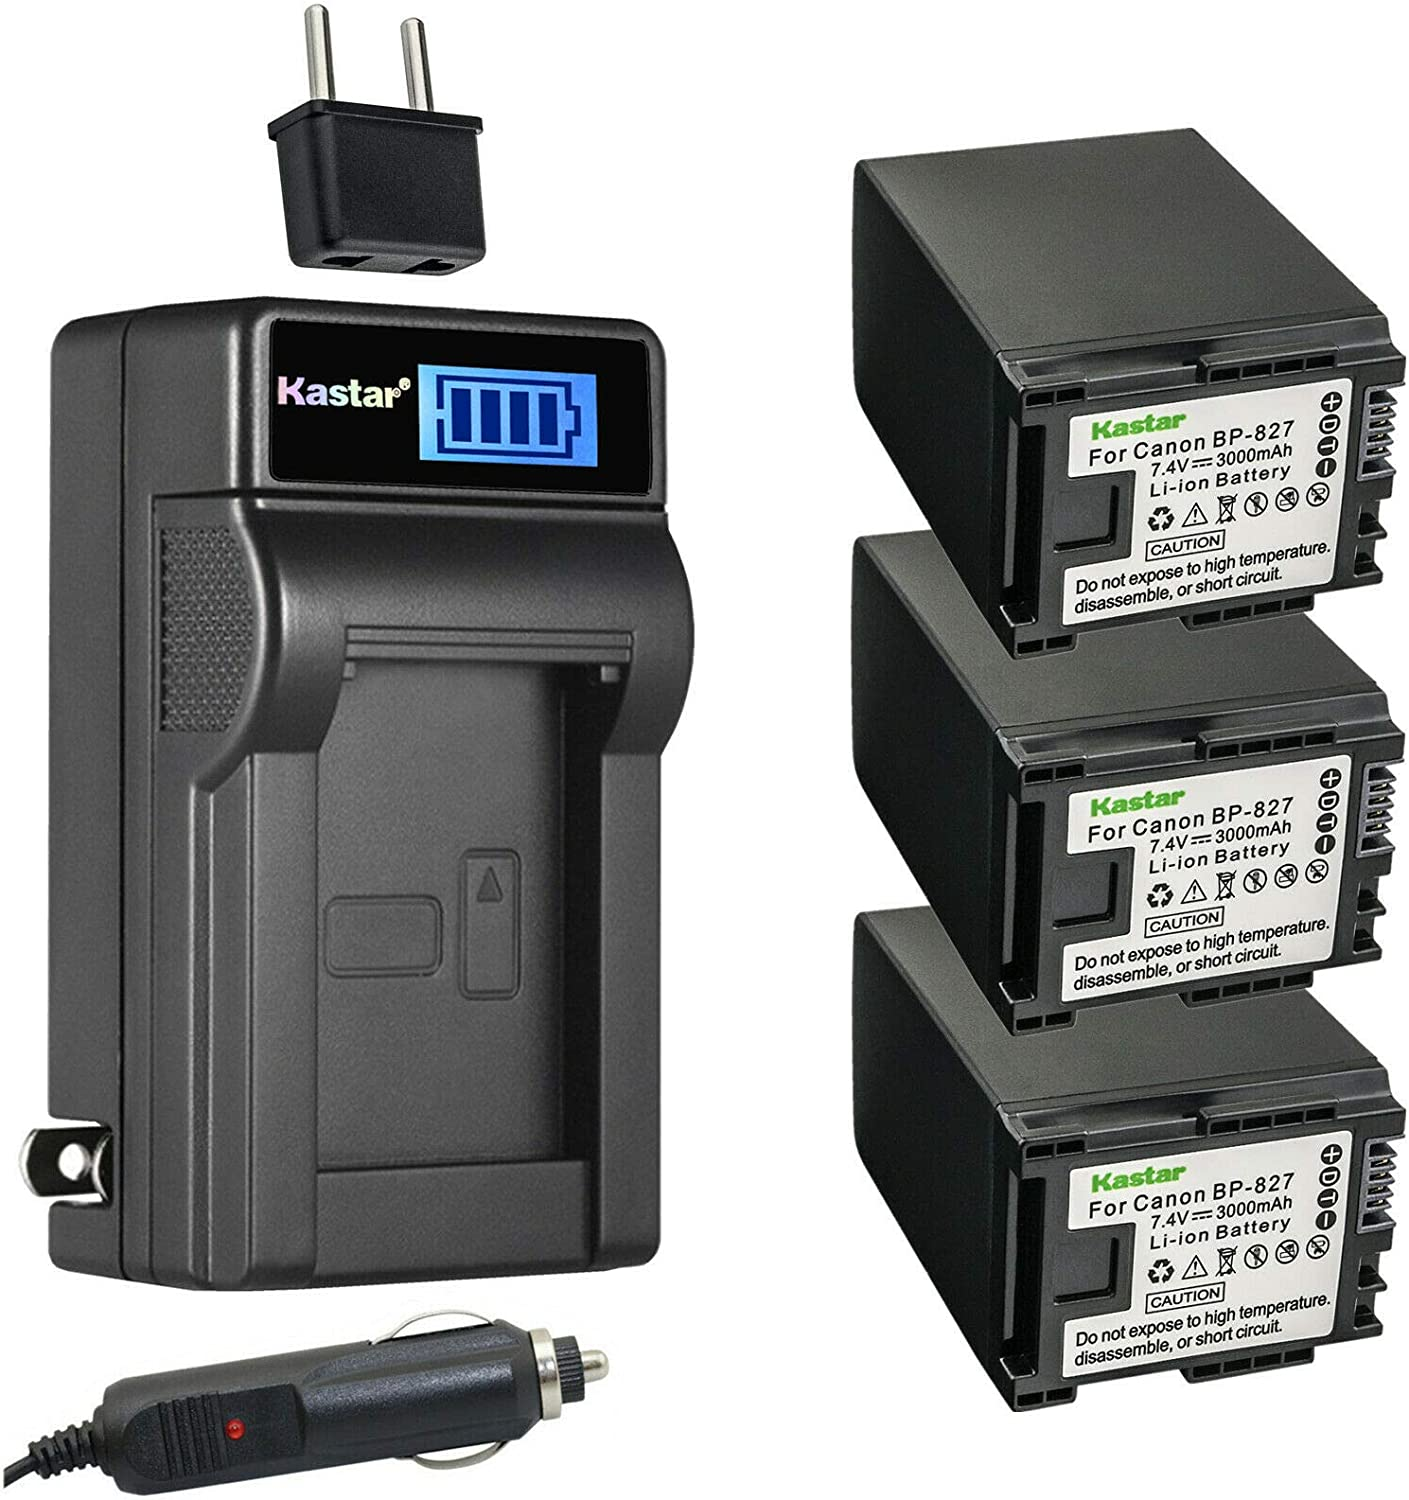 Sale item Kastar 3-Pack BP-827 Battery and LCD Charger Compatible Denver Mall AC with